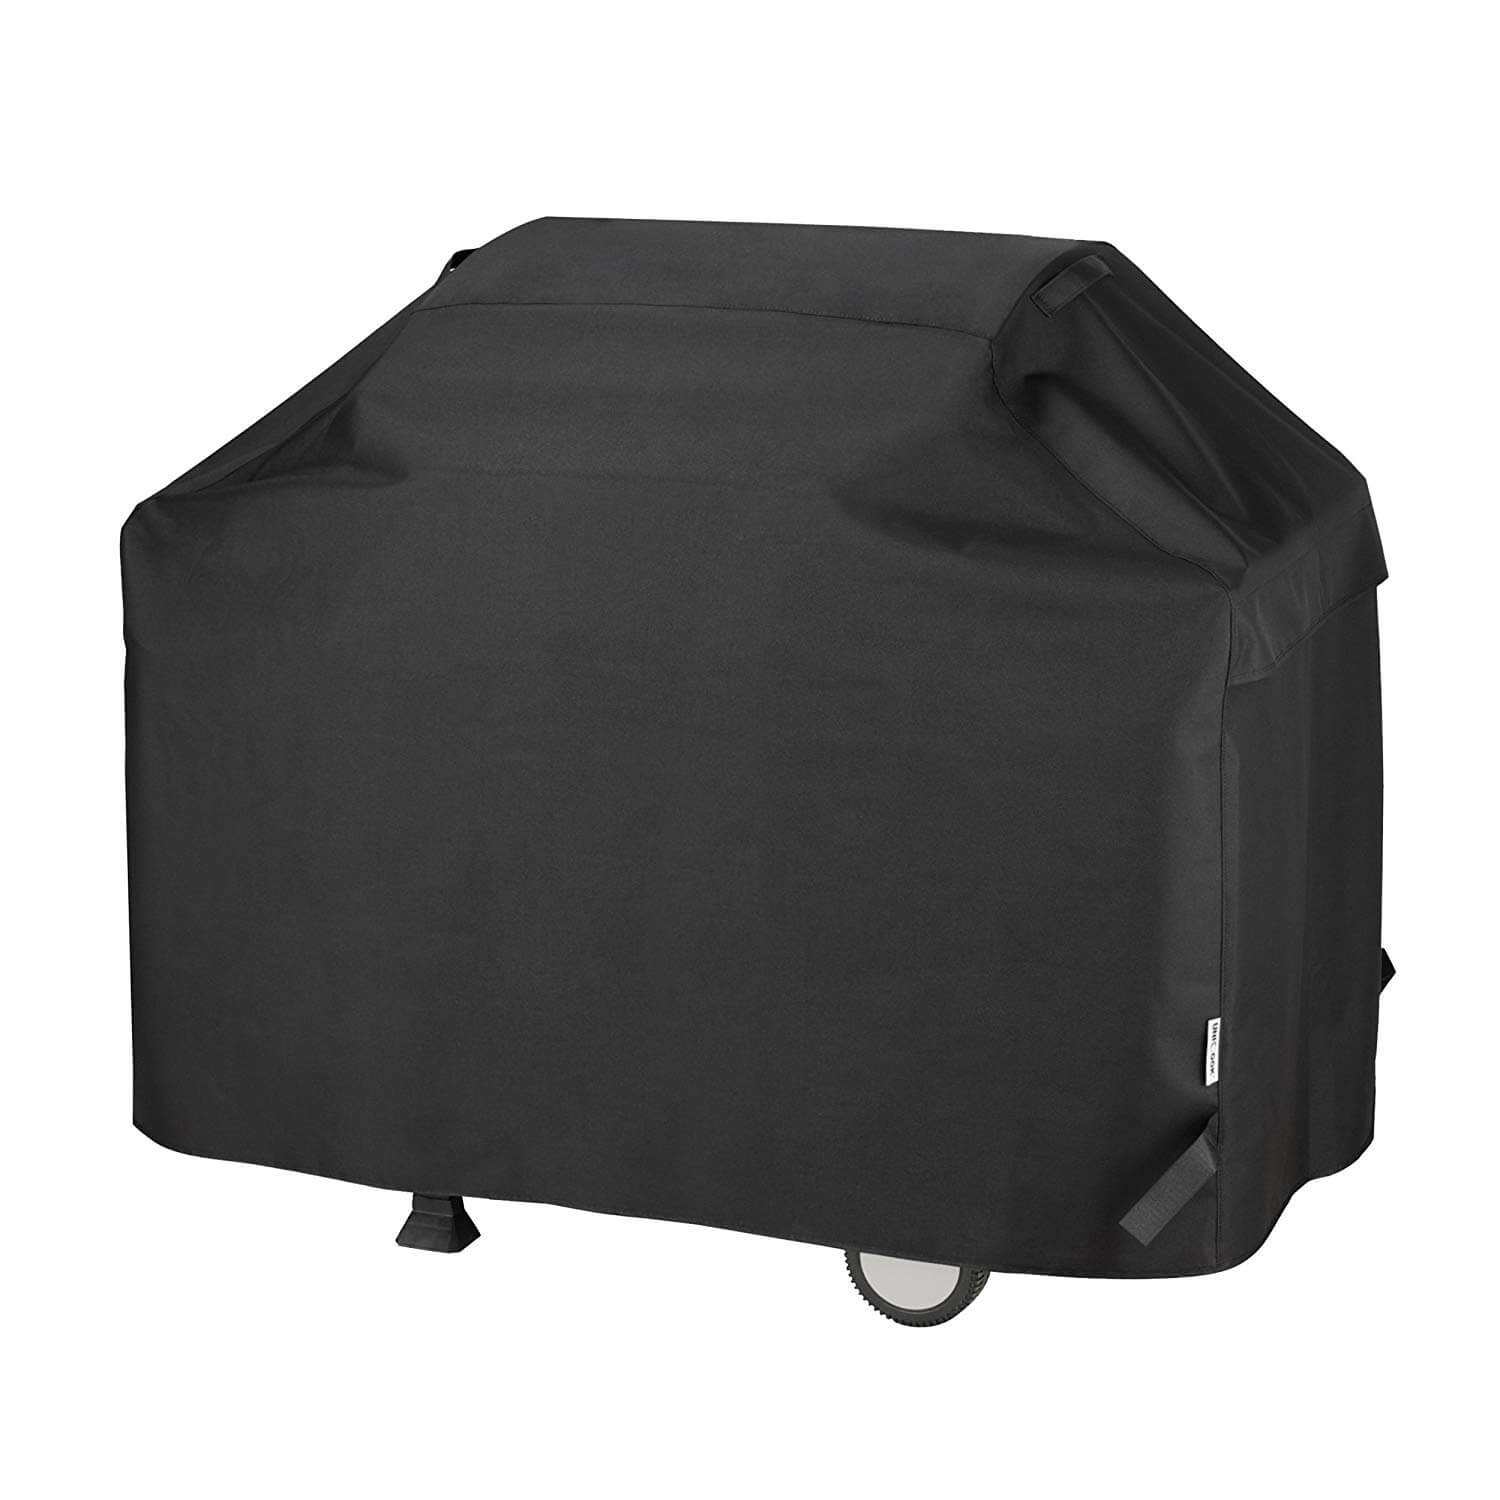 UniCook Heavy Duty Gas Grill Cover